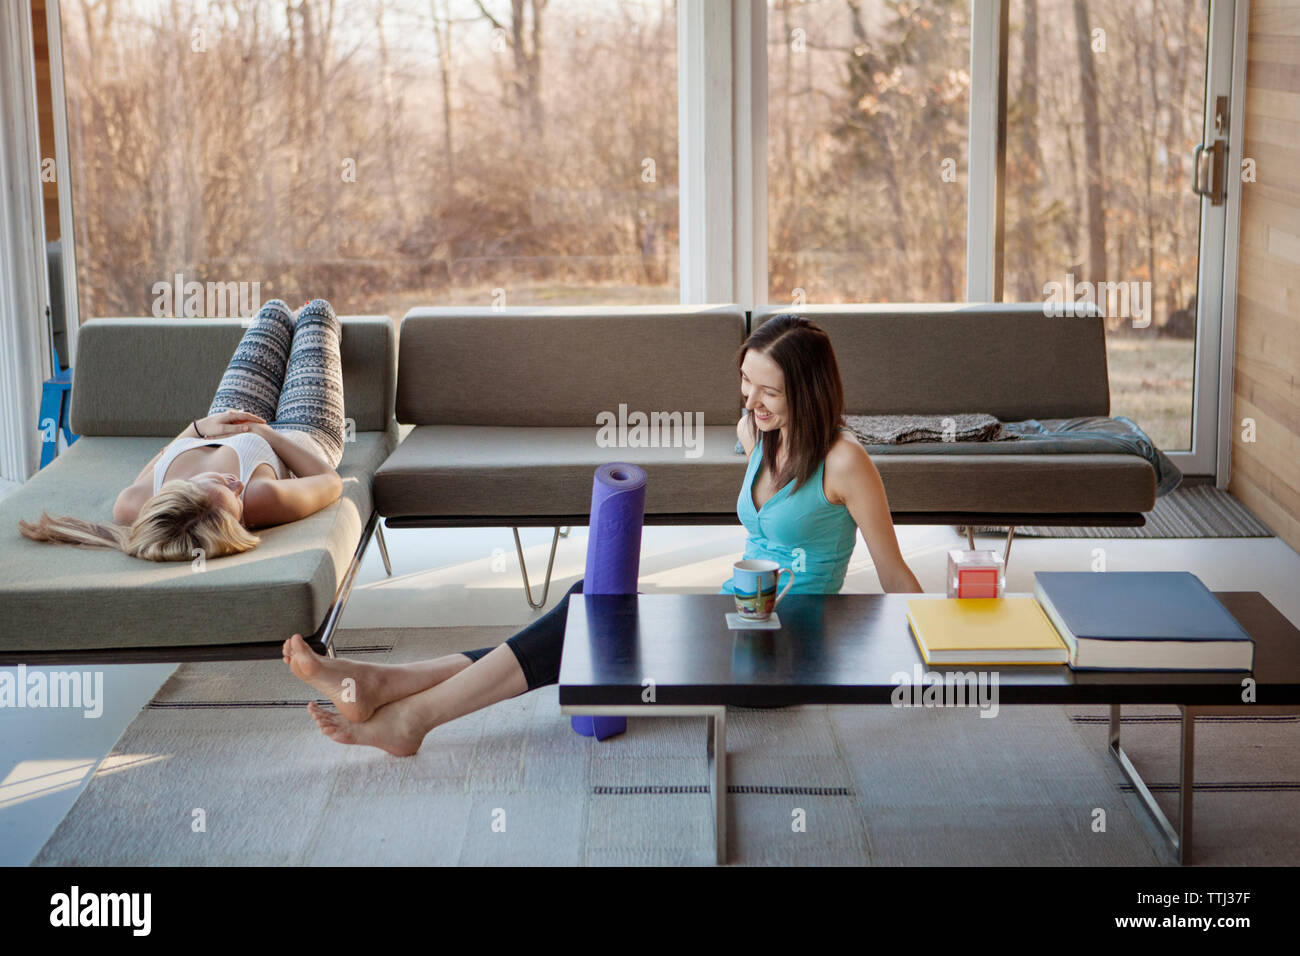 Happy homosexual women spending leisure time in living room - Stock Image